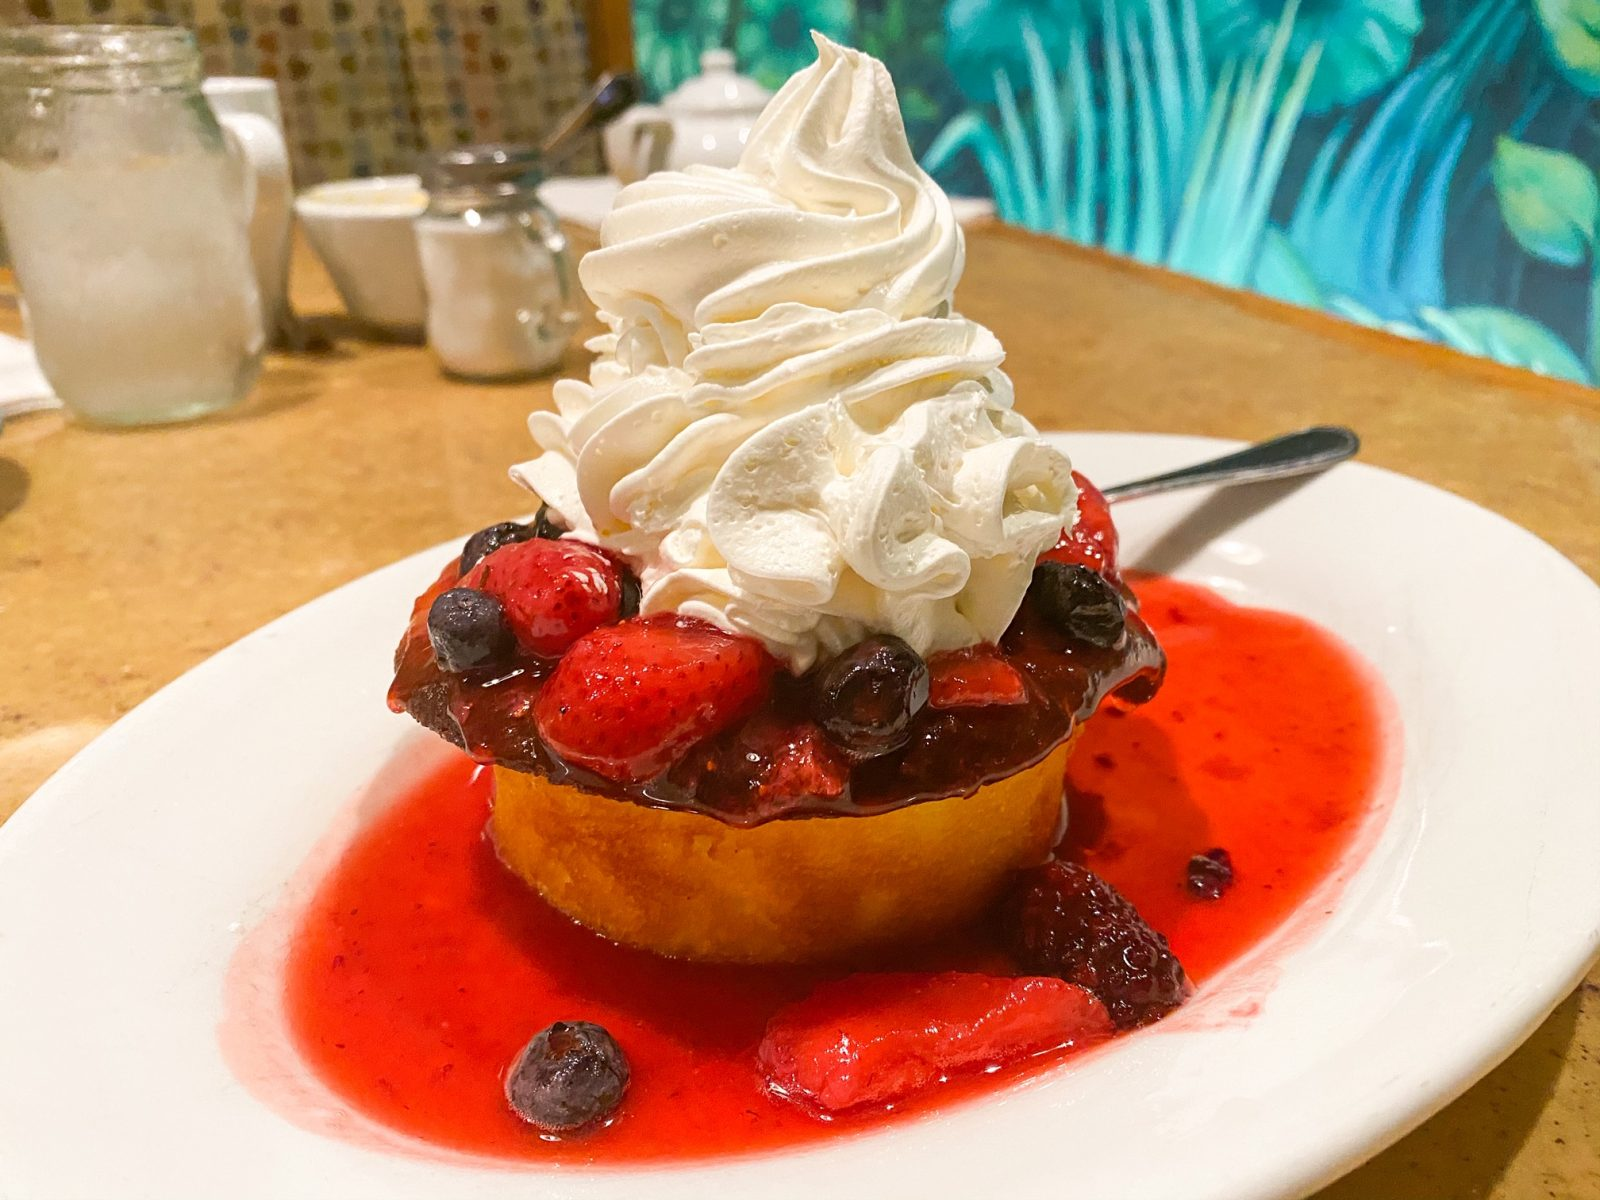 strawberry shortcake with whipped cream at Epcot